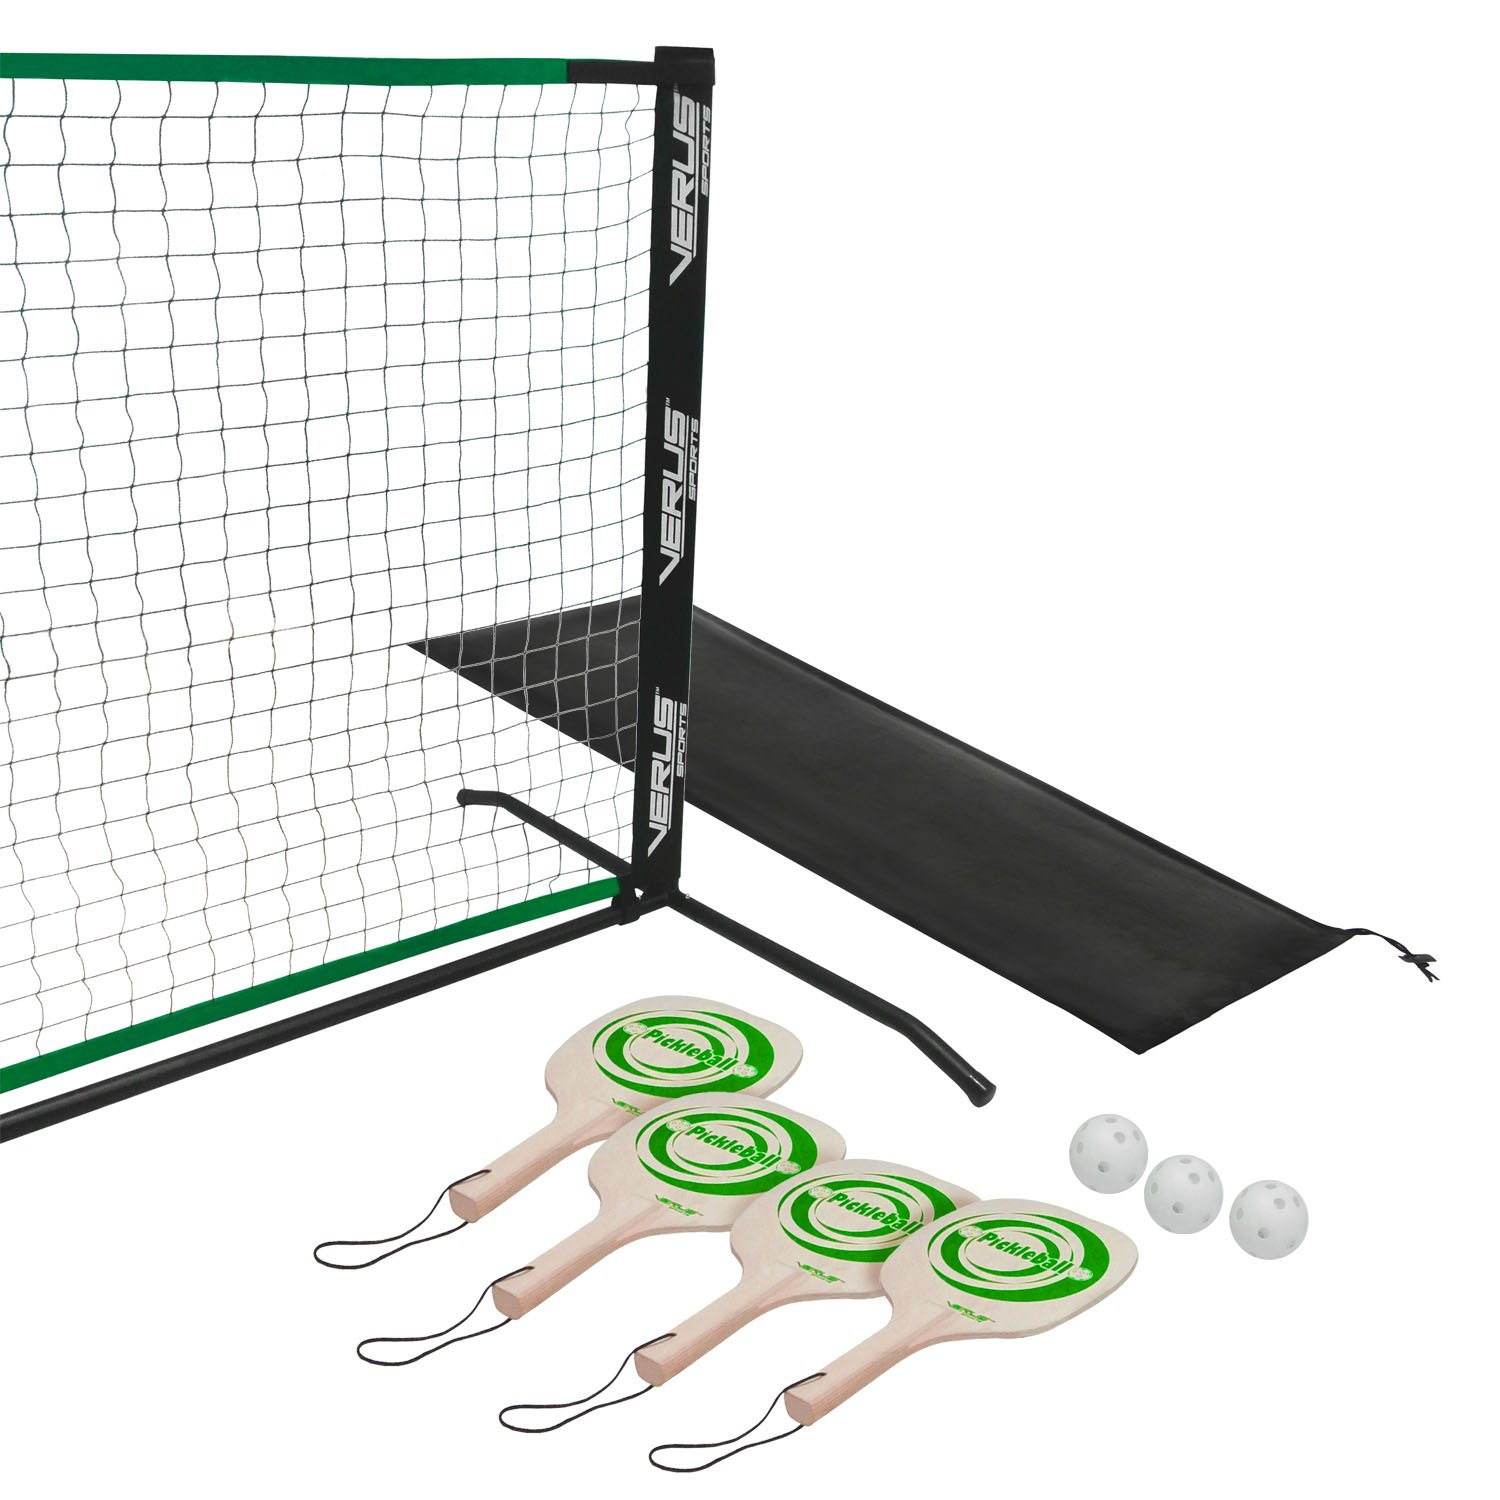 Verus Sports TG415 Deluxe Portable Pickleball Set (Includes 4 Pickleball Paddles, Balls and Net)